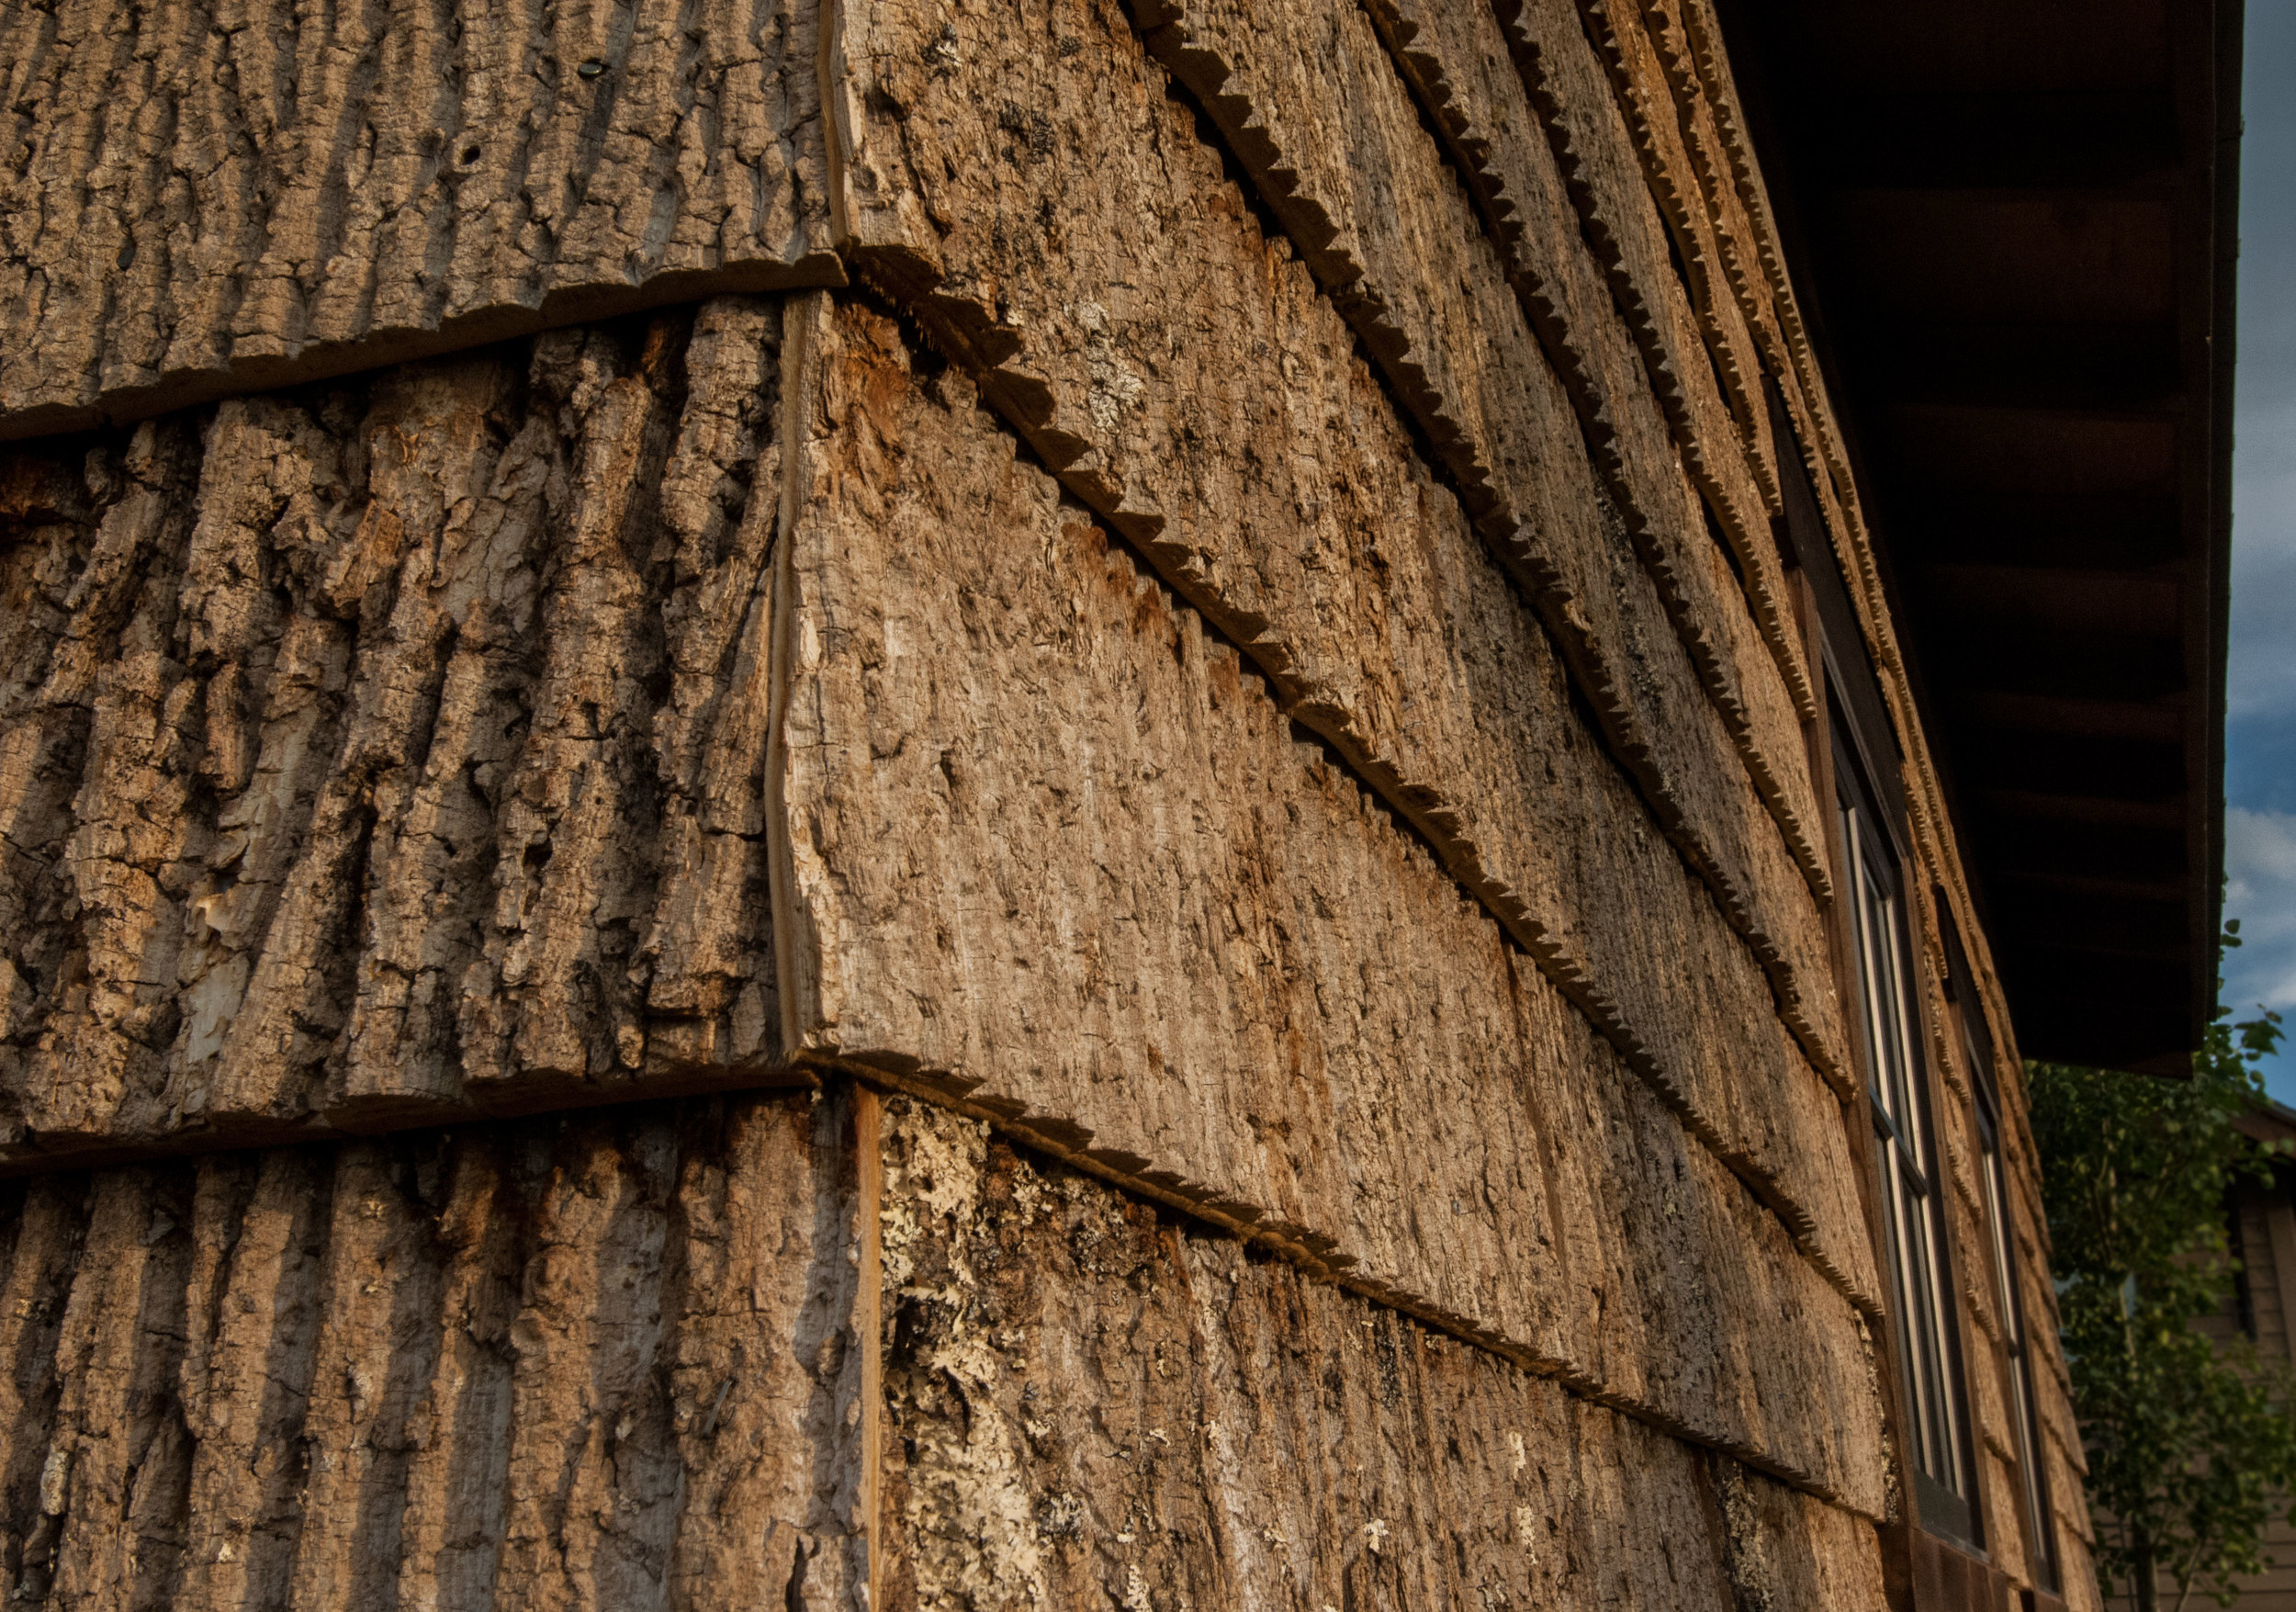 Comer-Ext-Detail-Bark-W.jpg